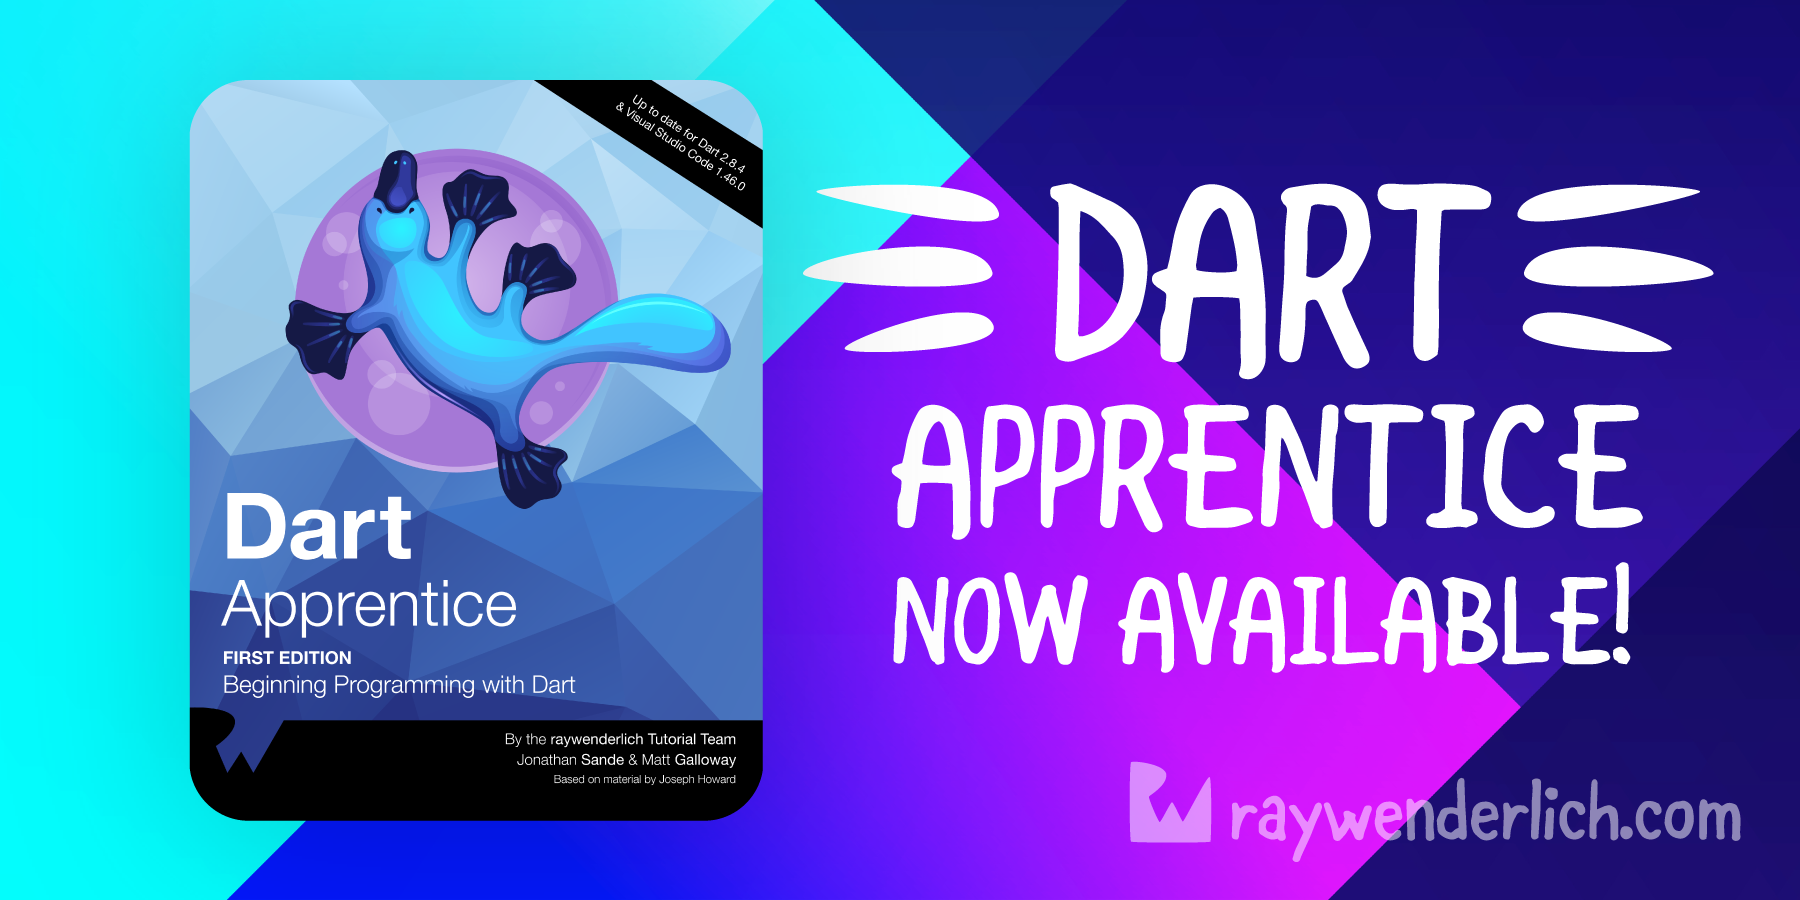 Announcing our Newest Book: Dart Apprentice! [FREE]